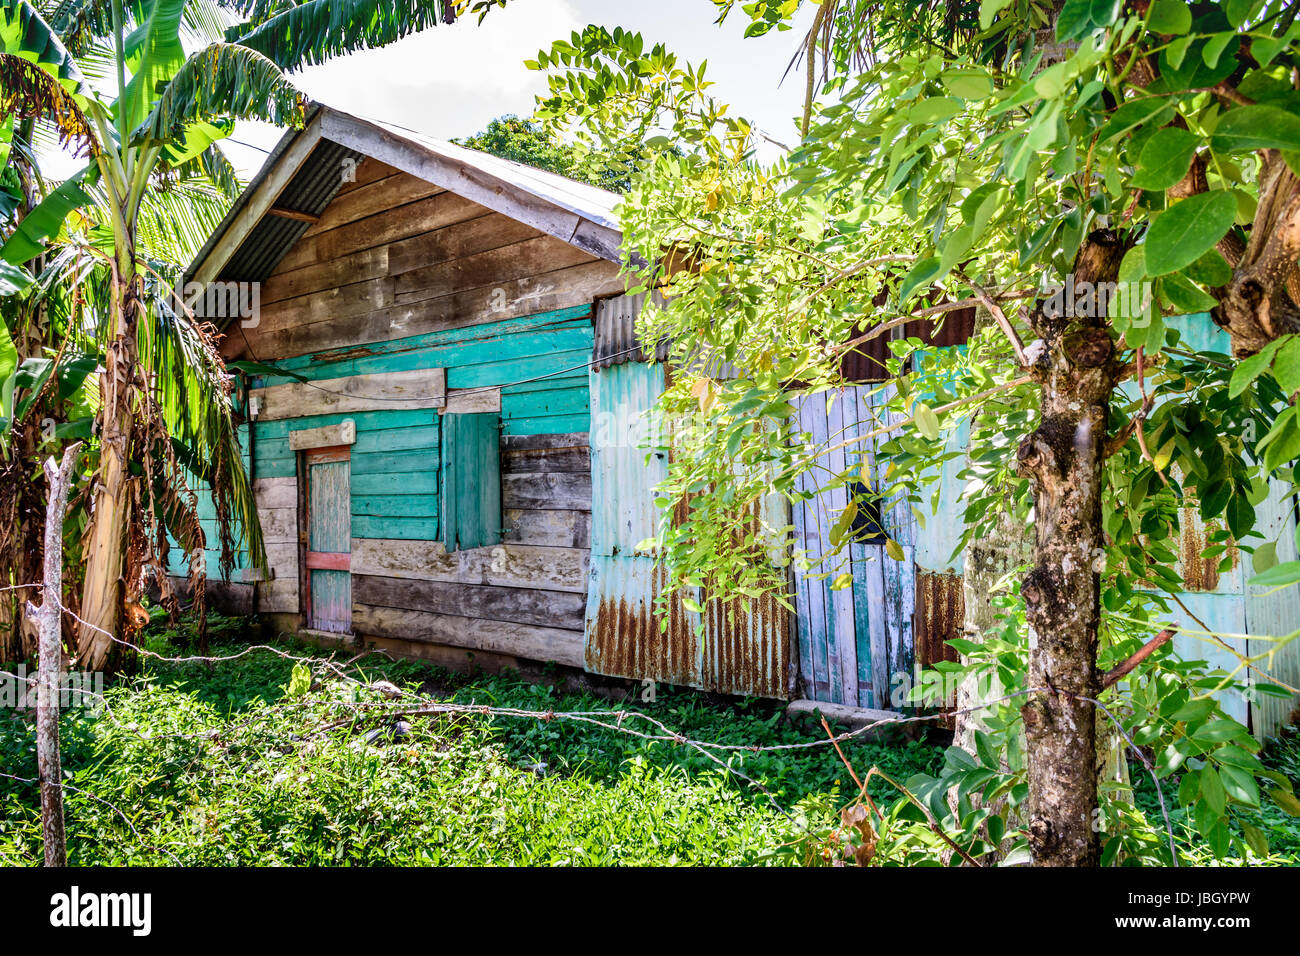 Wooden house in Caribbean town of Livingston, Guatemala - Stock Image